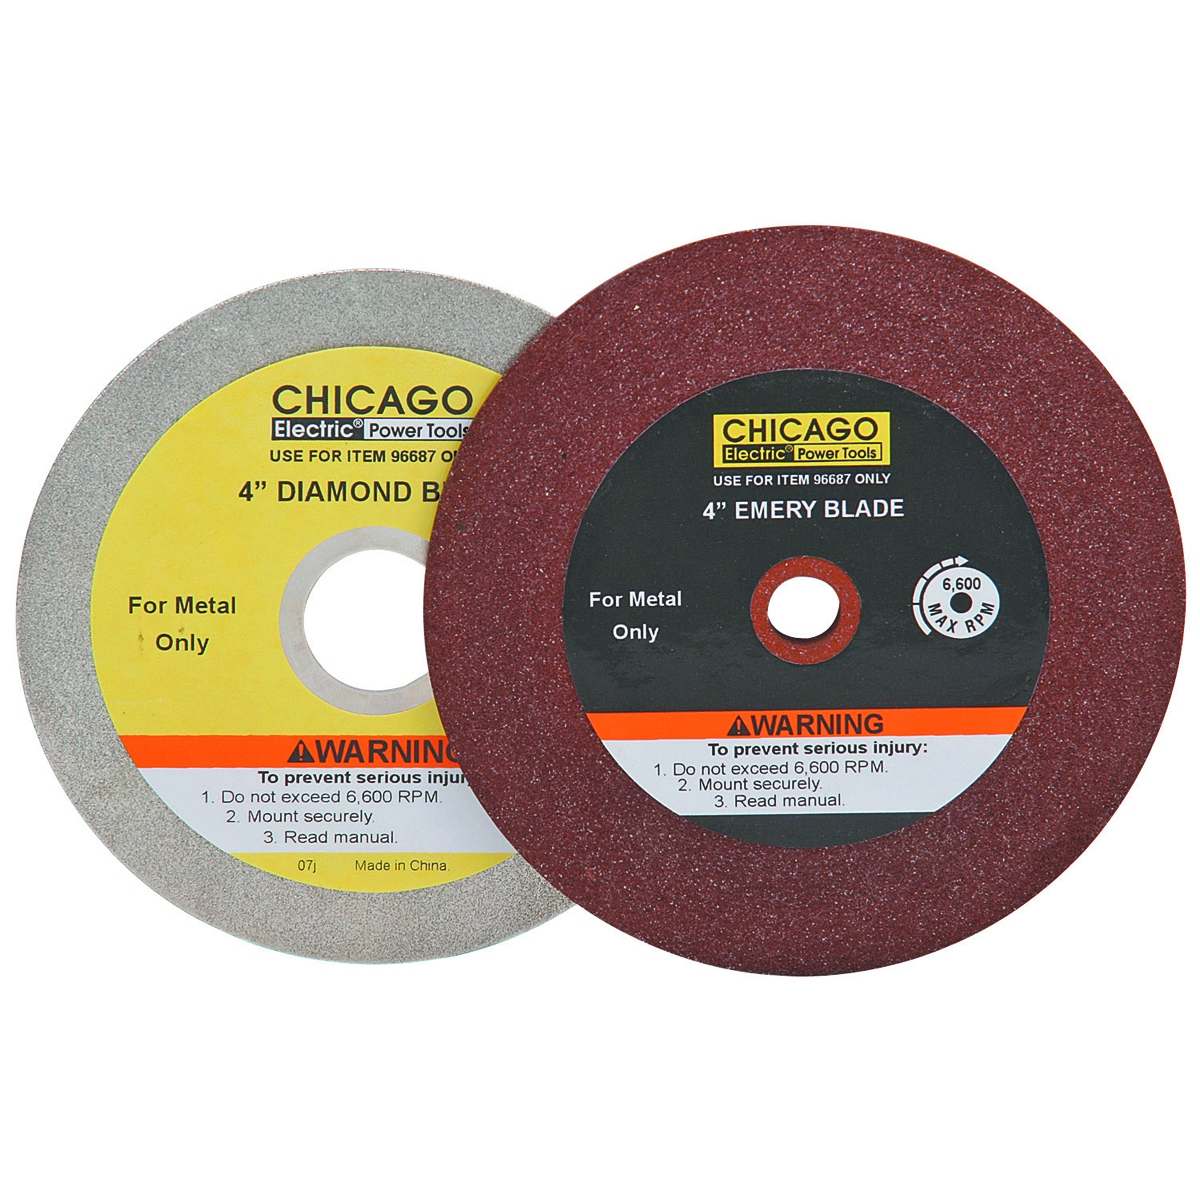 Replacement Wheels For The 120 Volt Circular Saw Blade